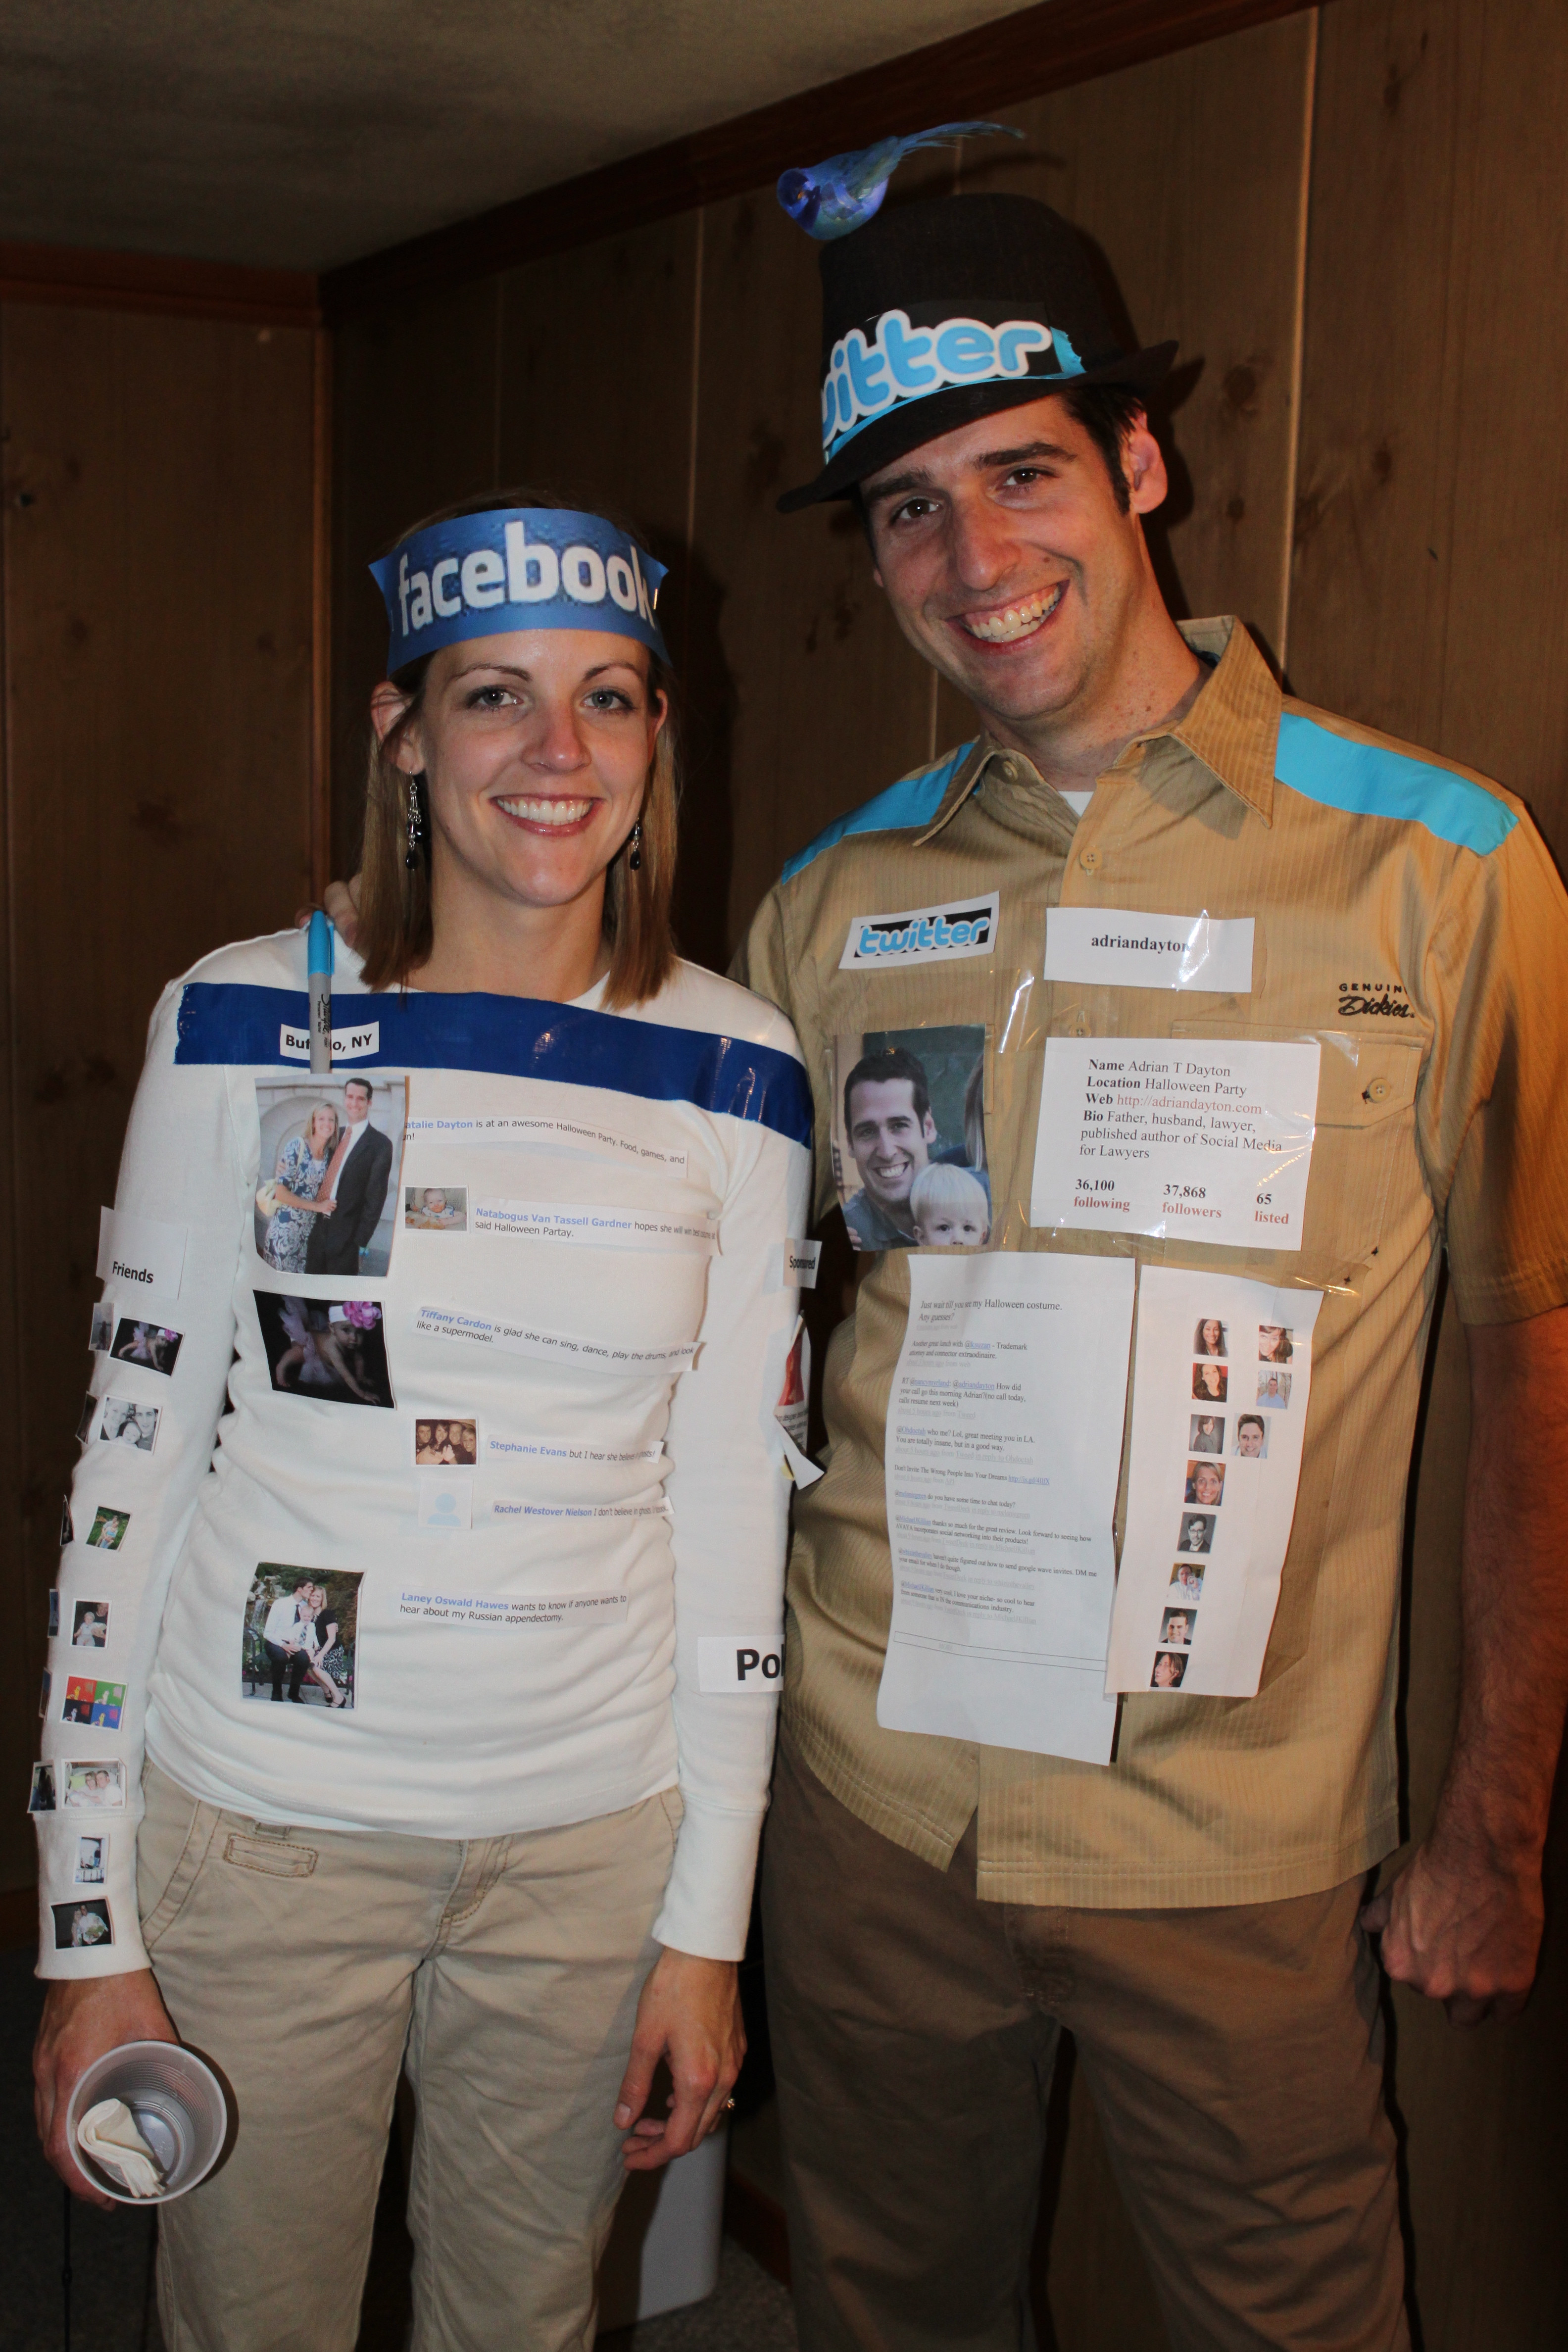 Couples Costumes DIY  The Social Media Couple Costume